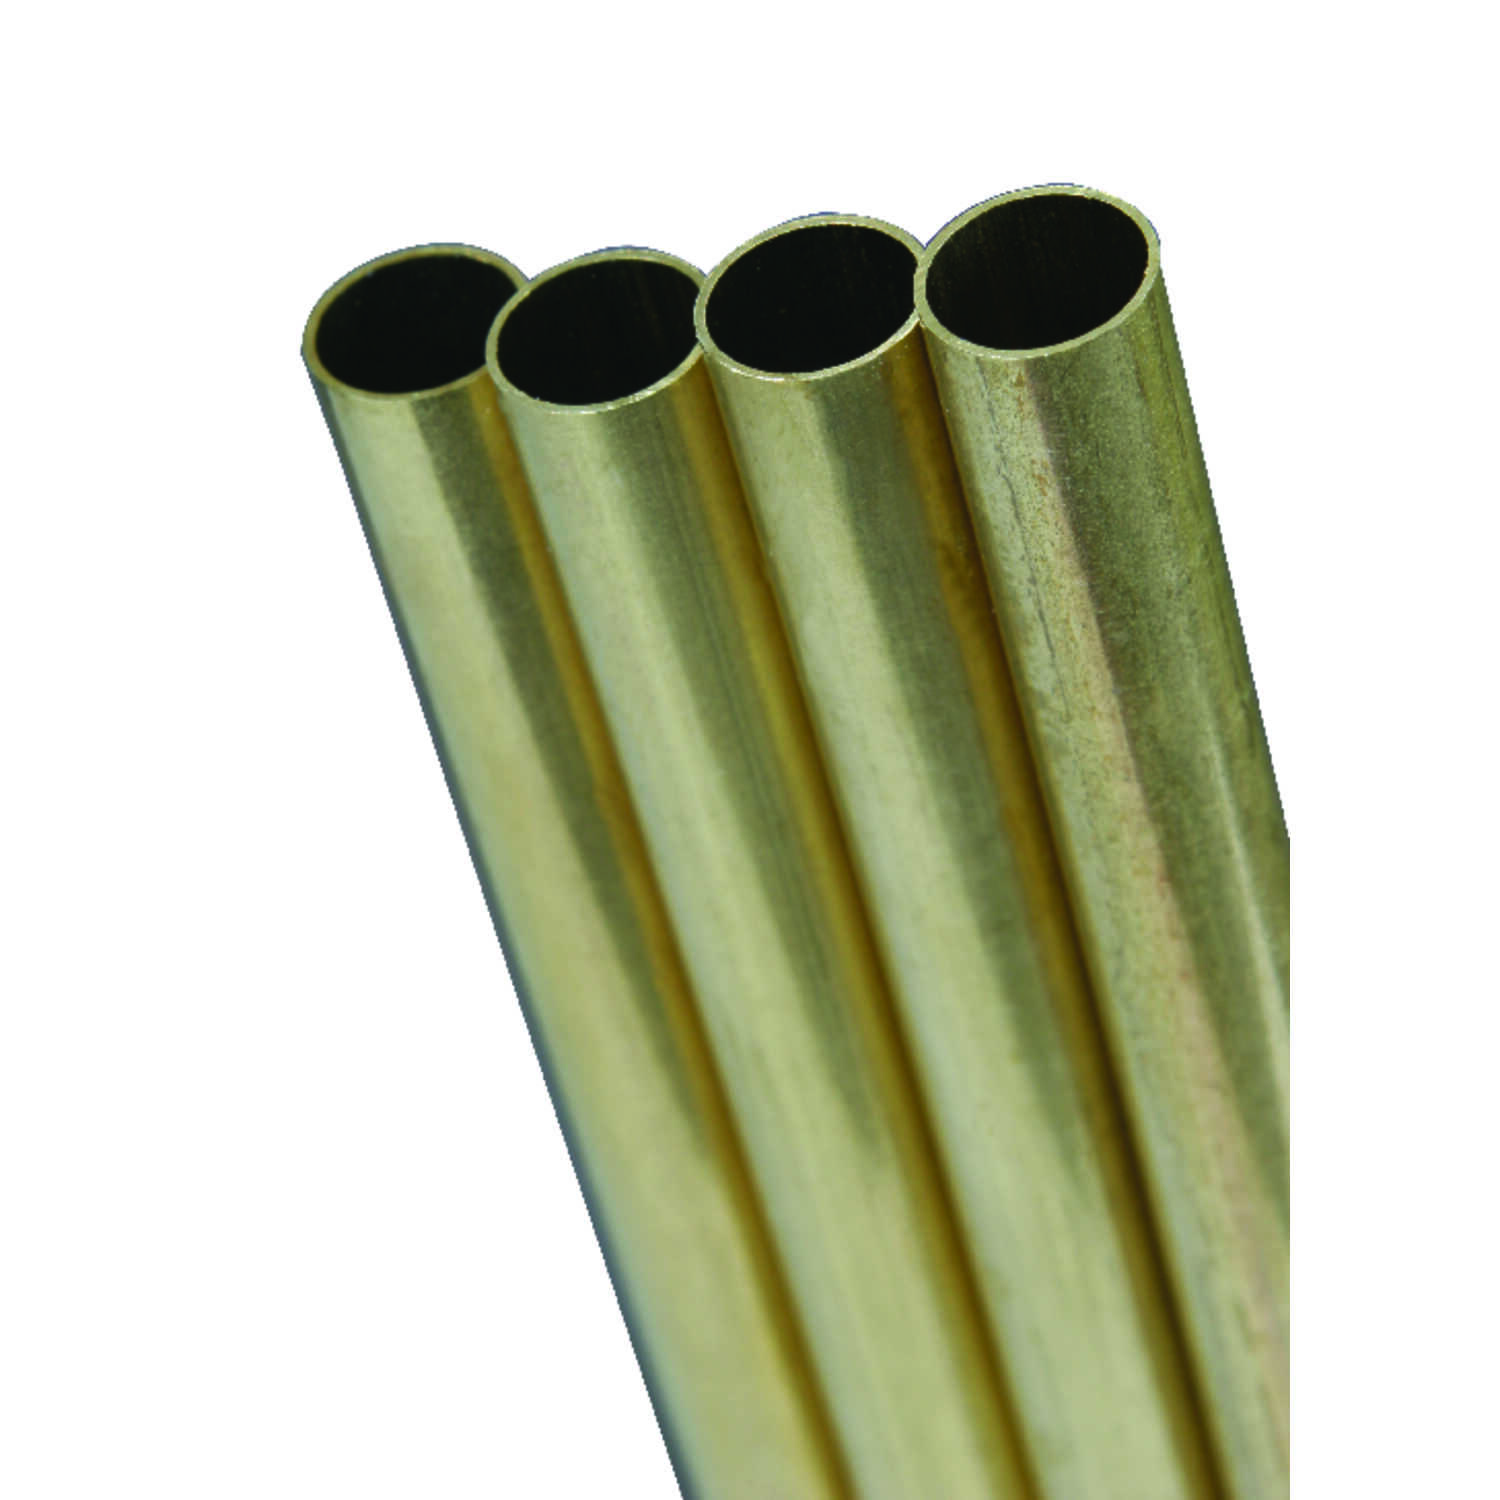 K&S  36 in. L x 1/4 in. Dia. Round  Brass Tube  5